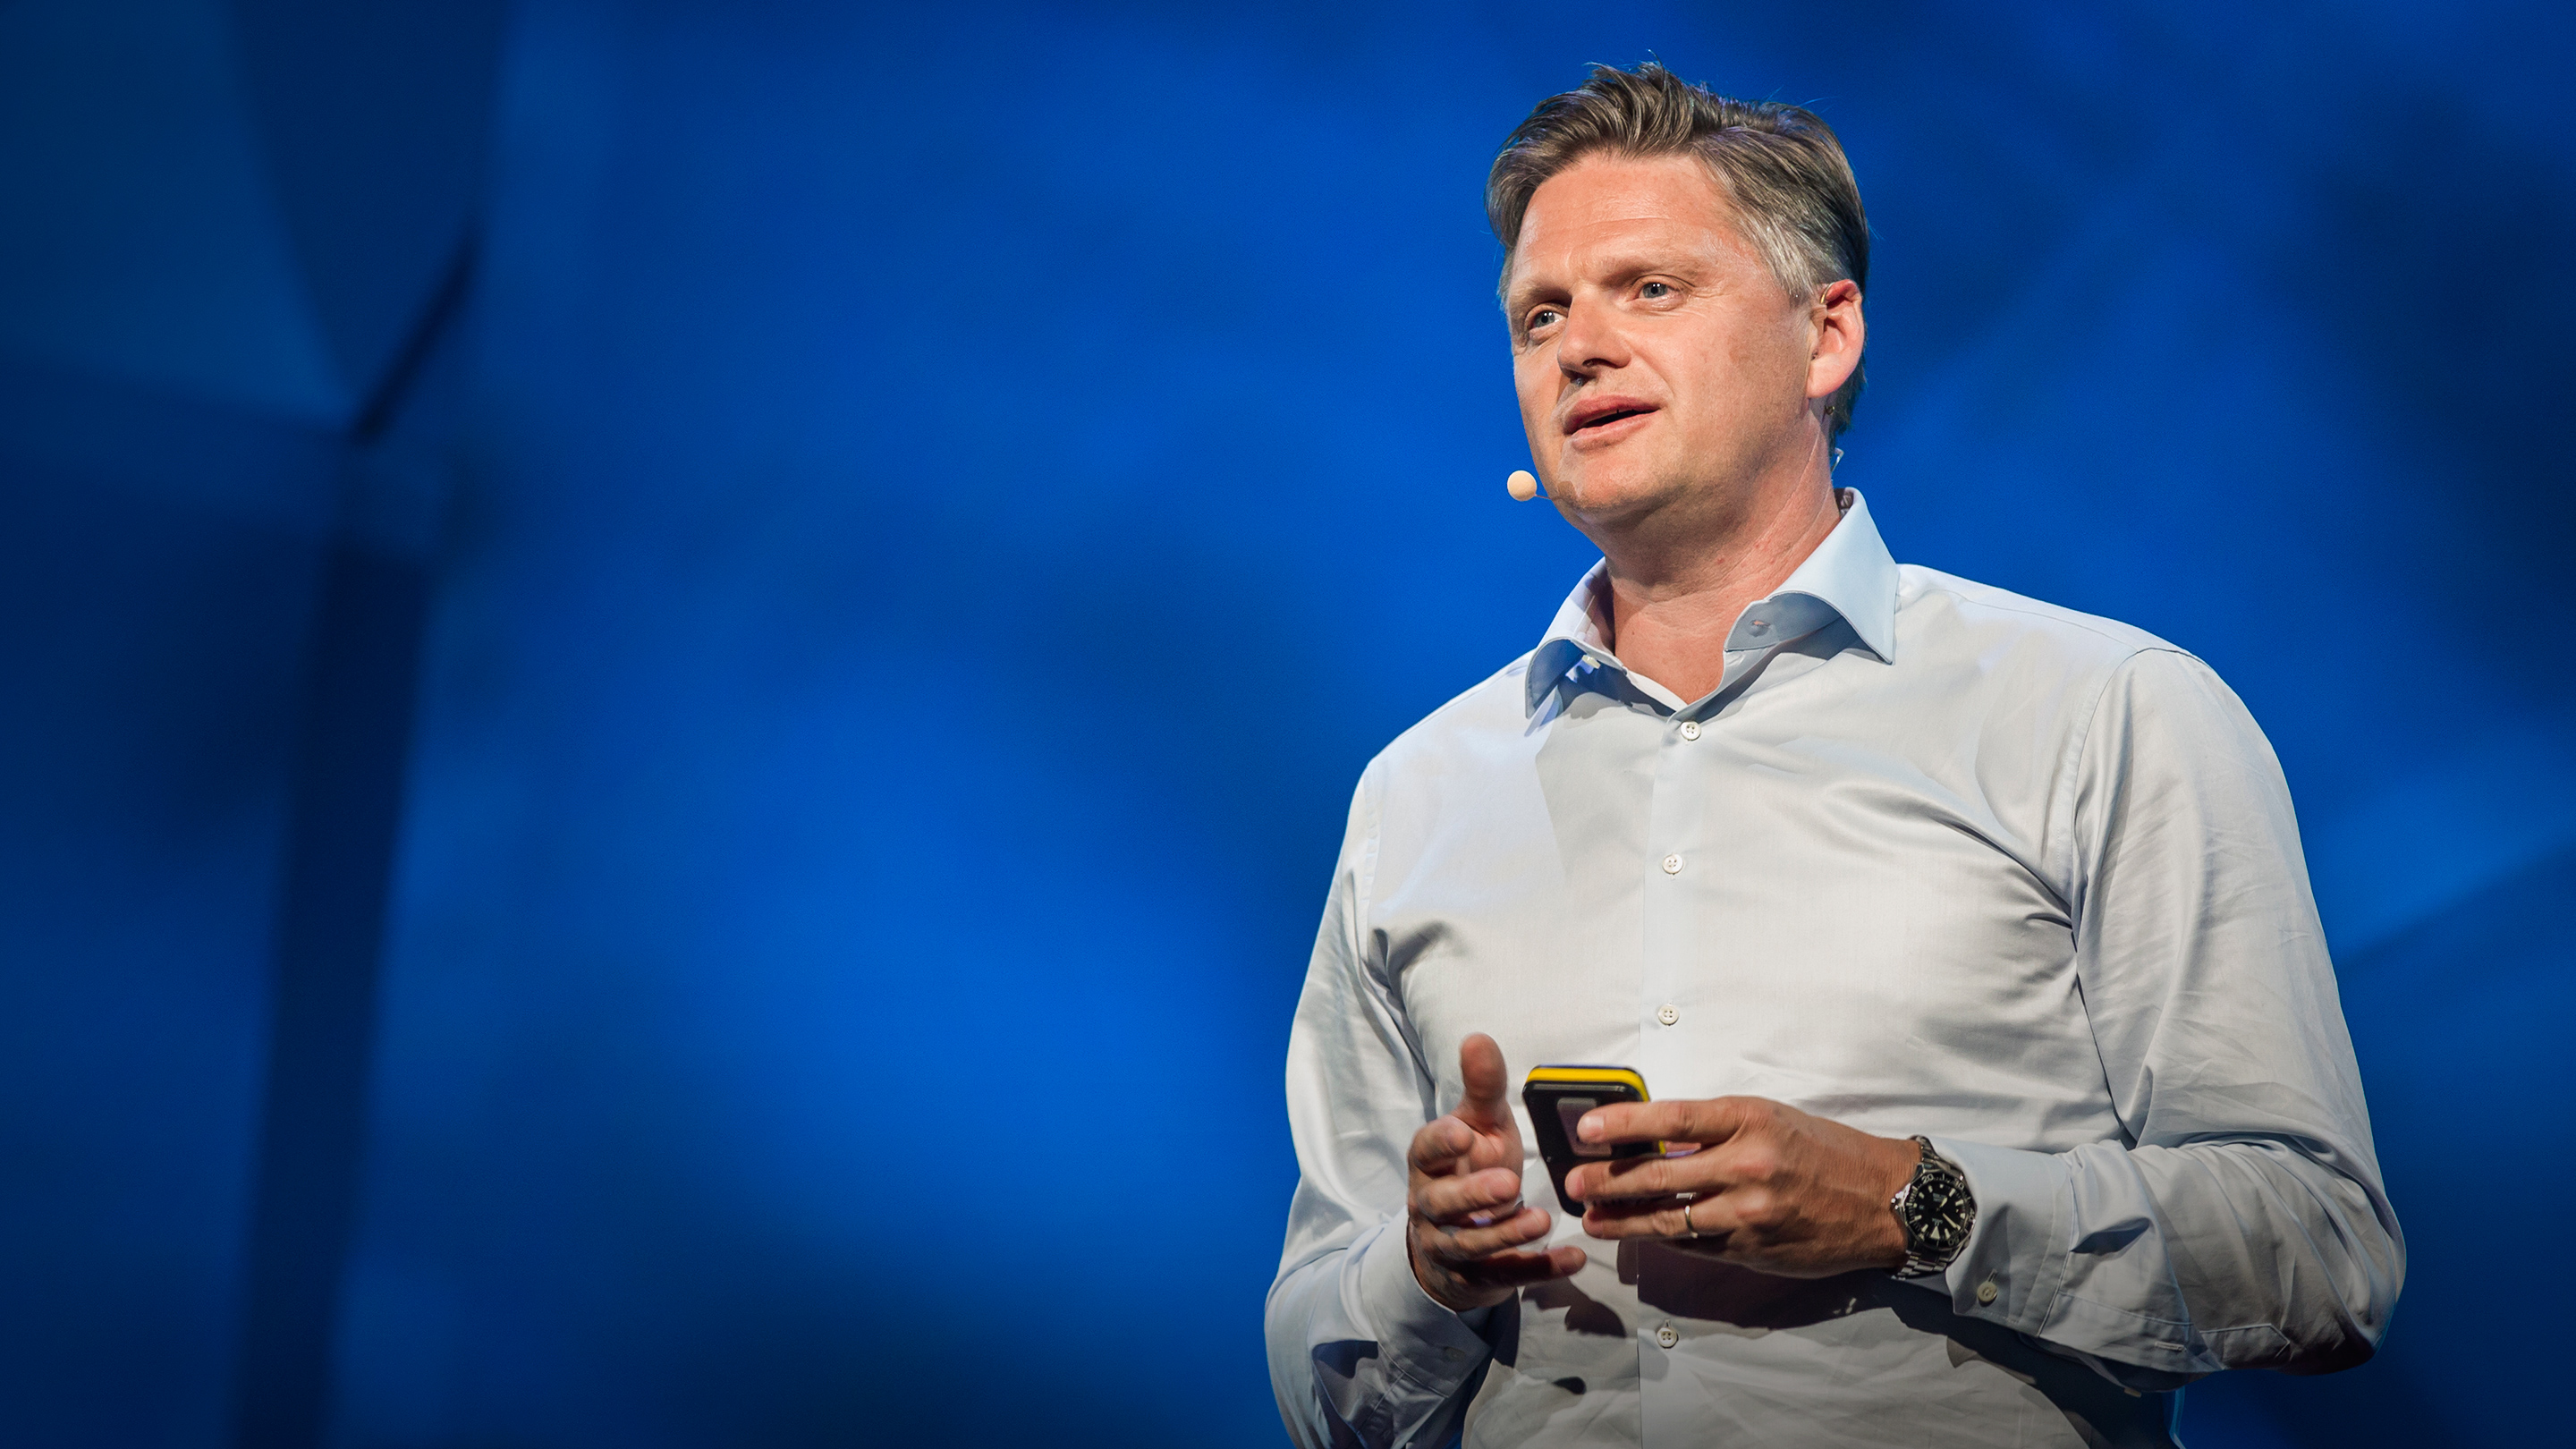 Knut Haanaes TED Talk on Two Reasons Companies Fail